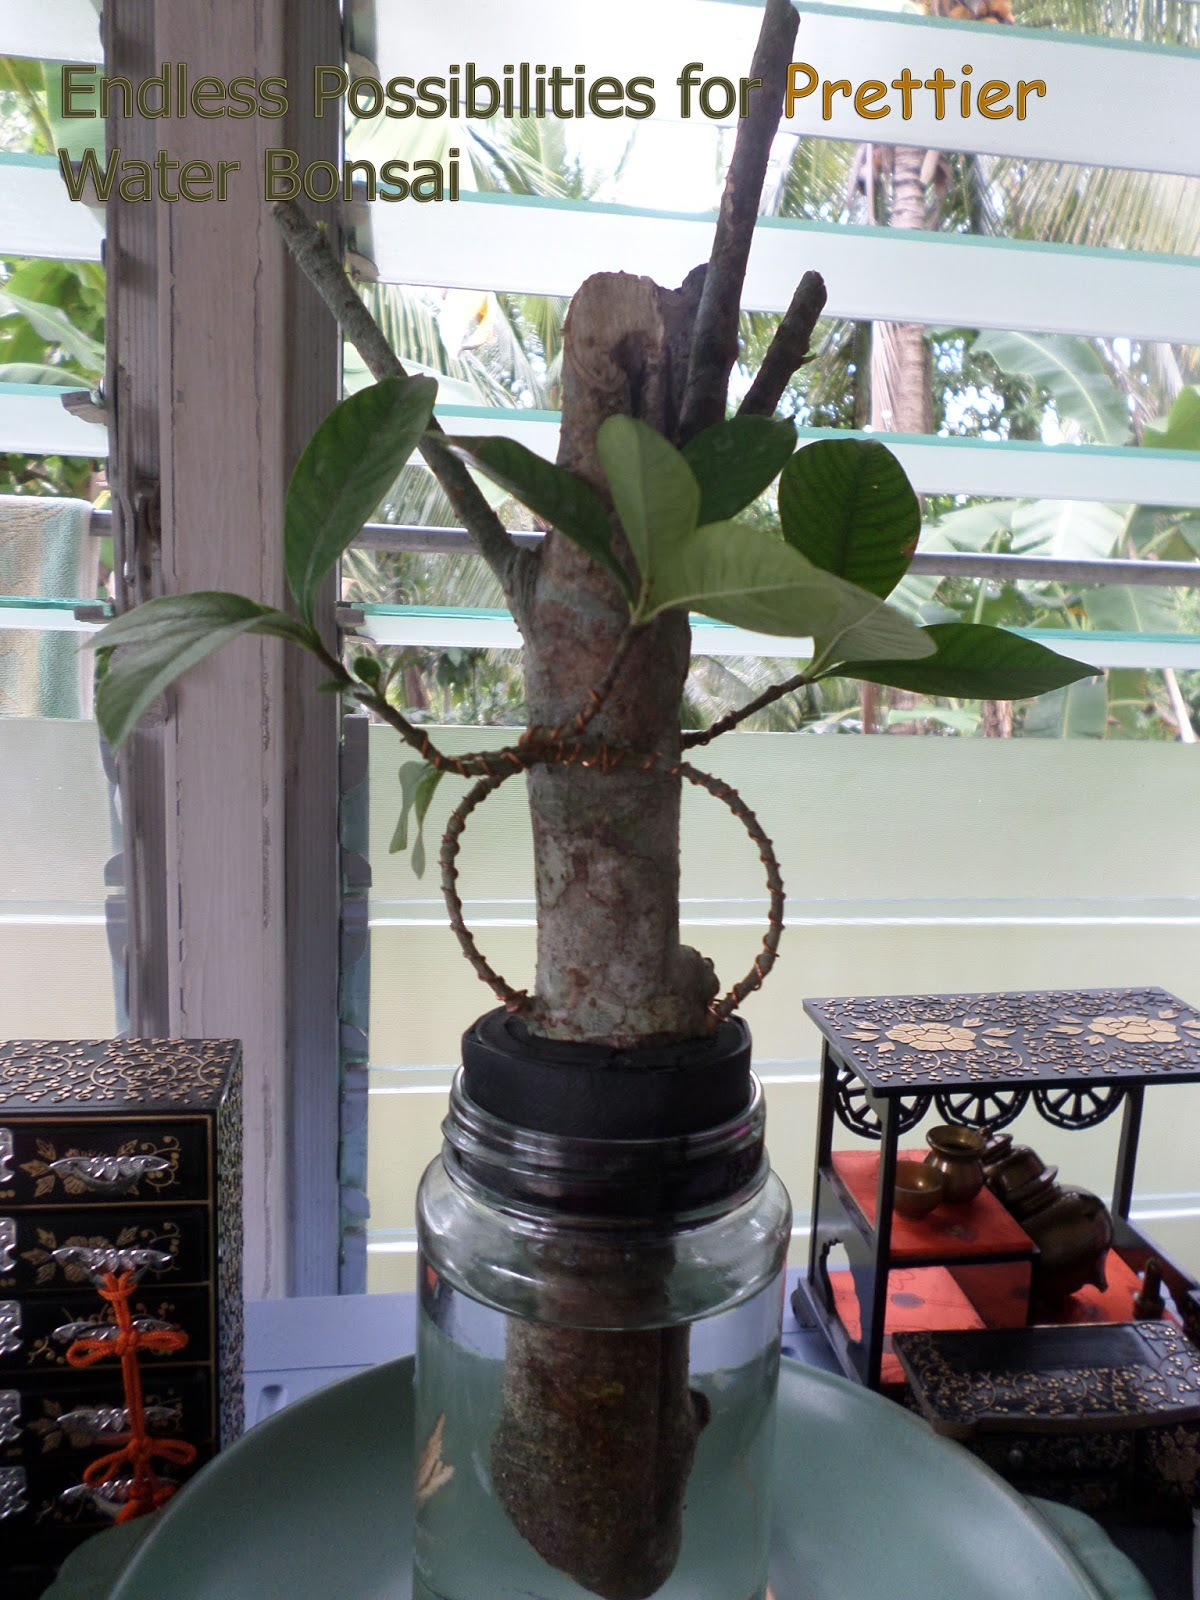 FDLS Online Magazine Amazing Vase Water Bonsai Update